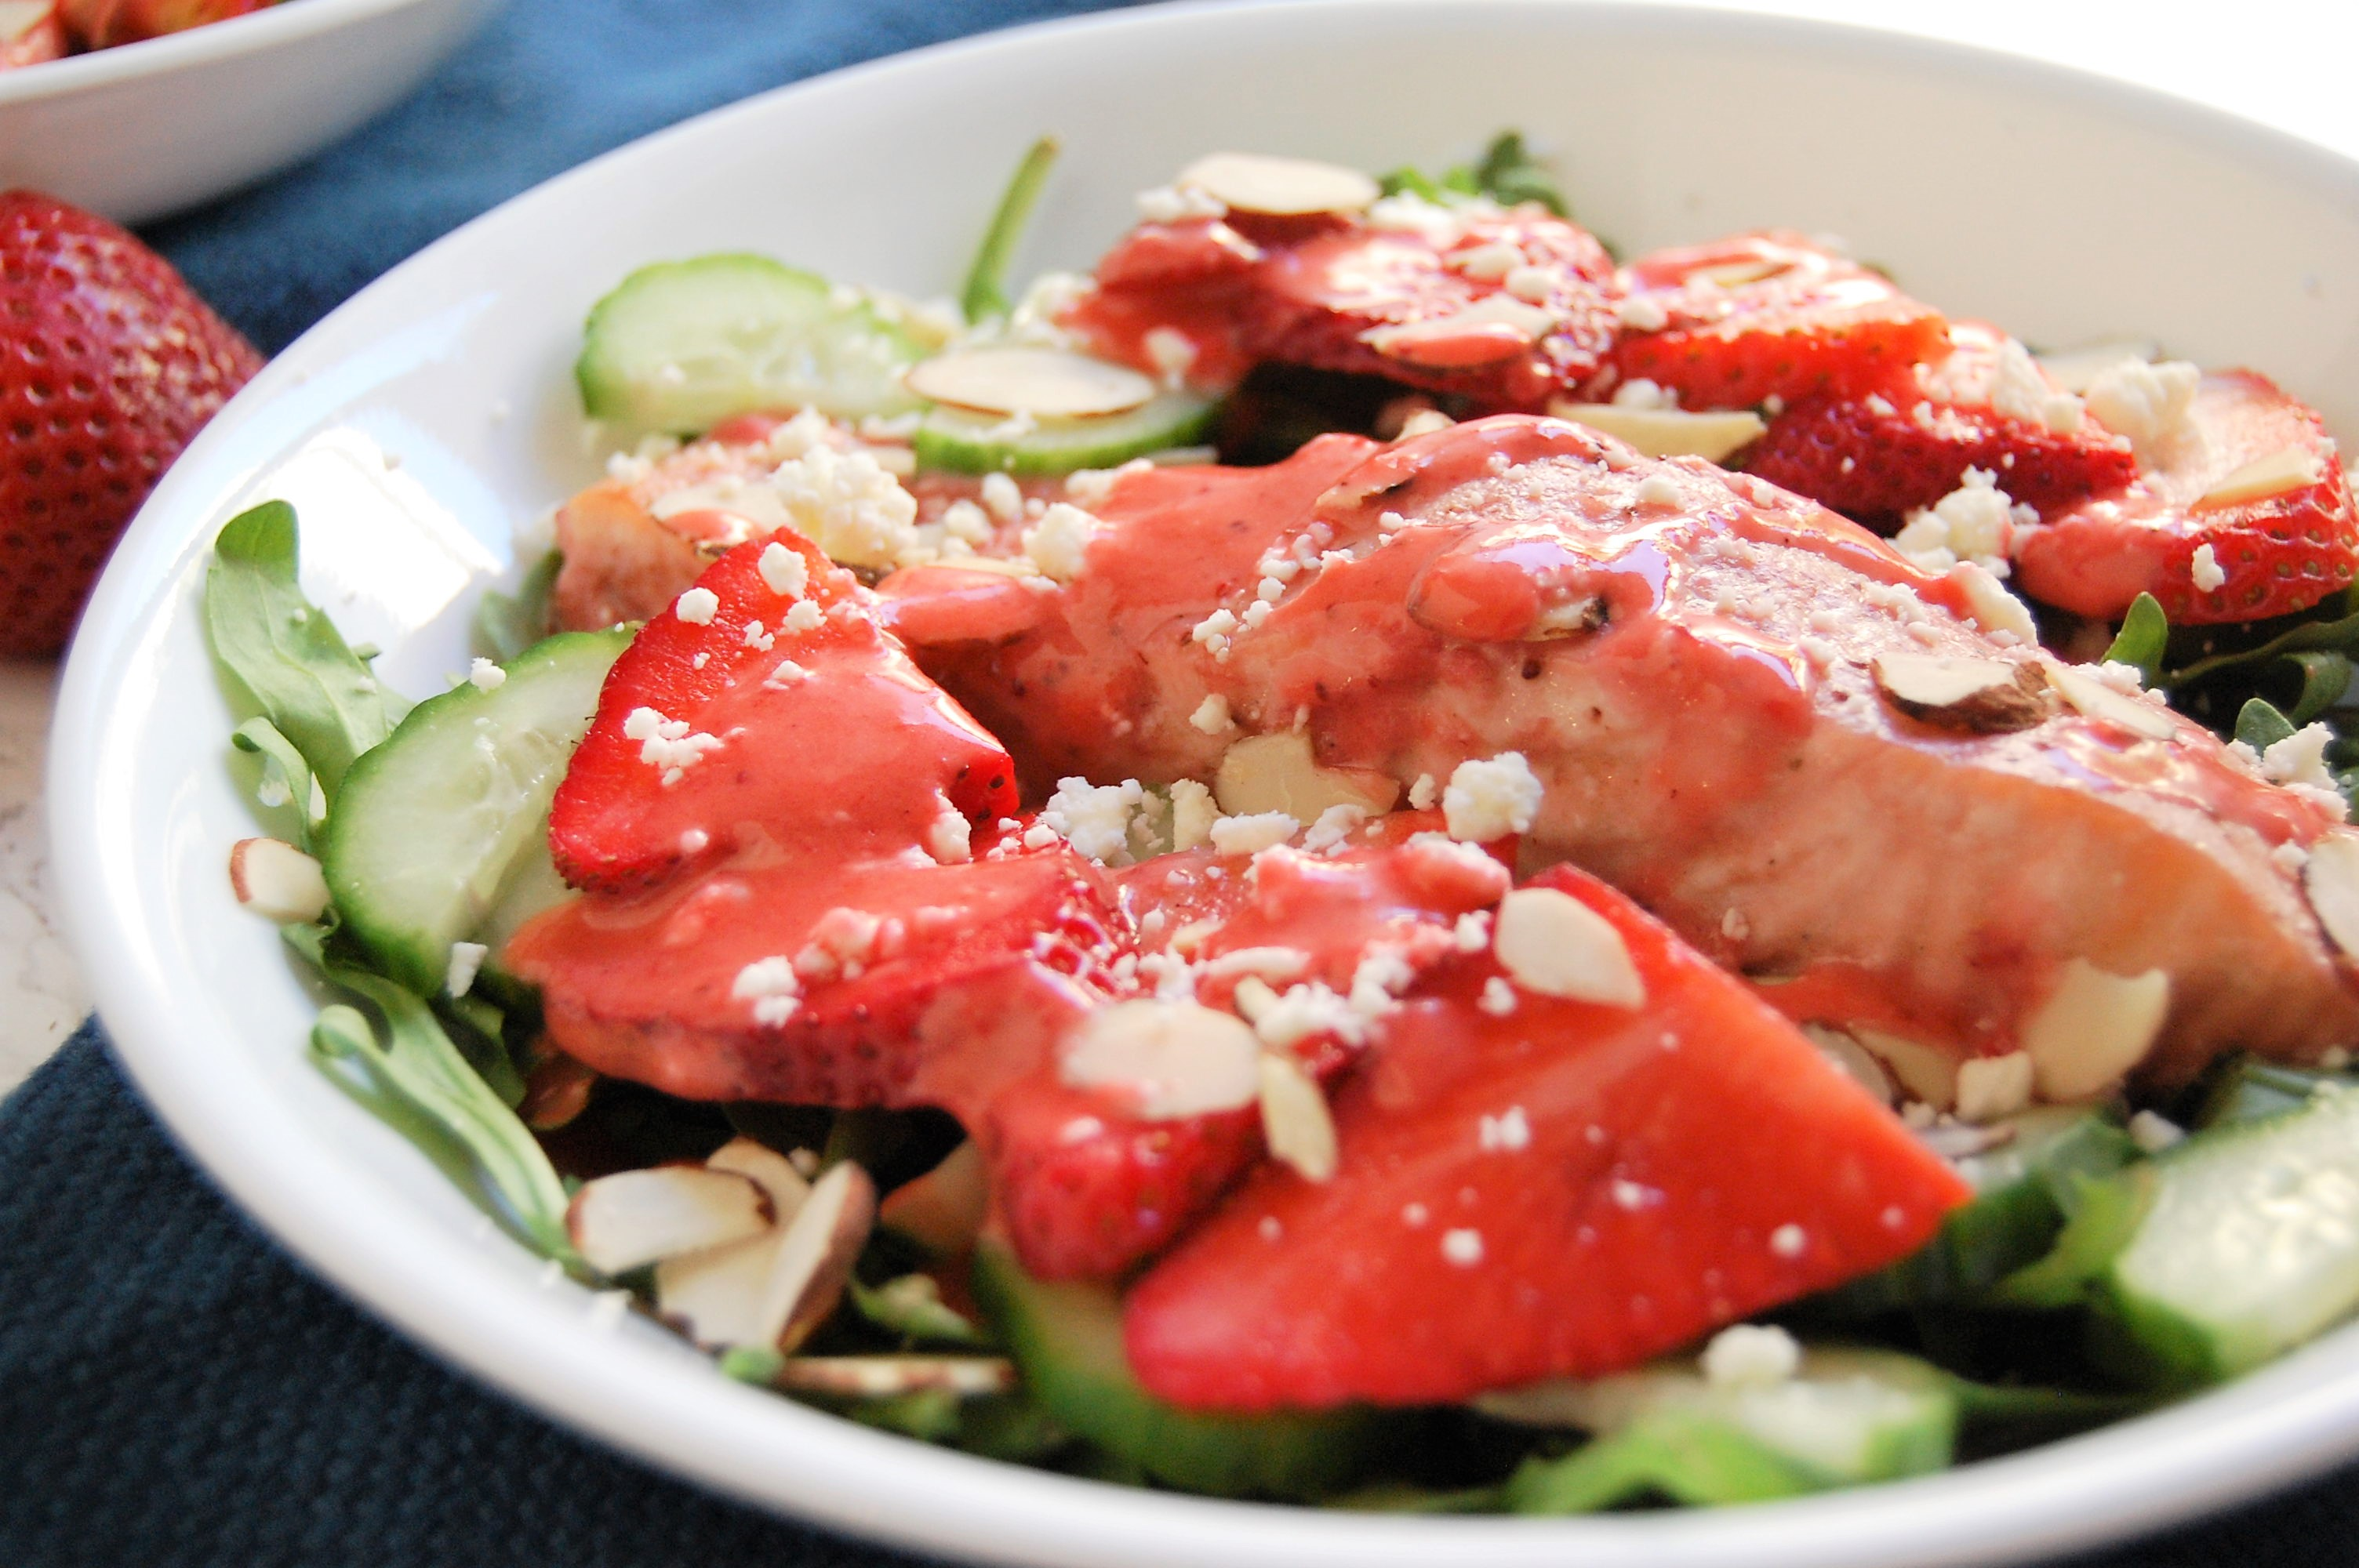 This fresh, springtime salad is a healthy entree salad with salmon baked in strawberry dressing. It has crisp cucumber toppings, sweet strawberries, crunchy almonds, creamy feta, and all served over a bed of spicy arugula. Try this easy, 30 minute dinner! | healthy recipe, salad recipe, salmon salad, strawberry salad, 30 minute meal, 30 minute dinner, pretty food, strawberries, strawberry salmon salad, dietitian recipe, nutritious recipe, healthy recipe |